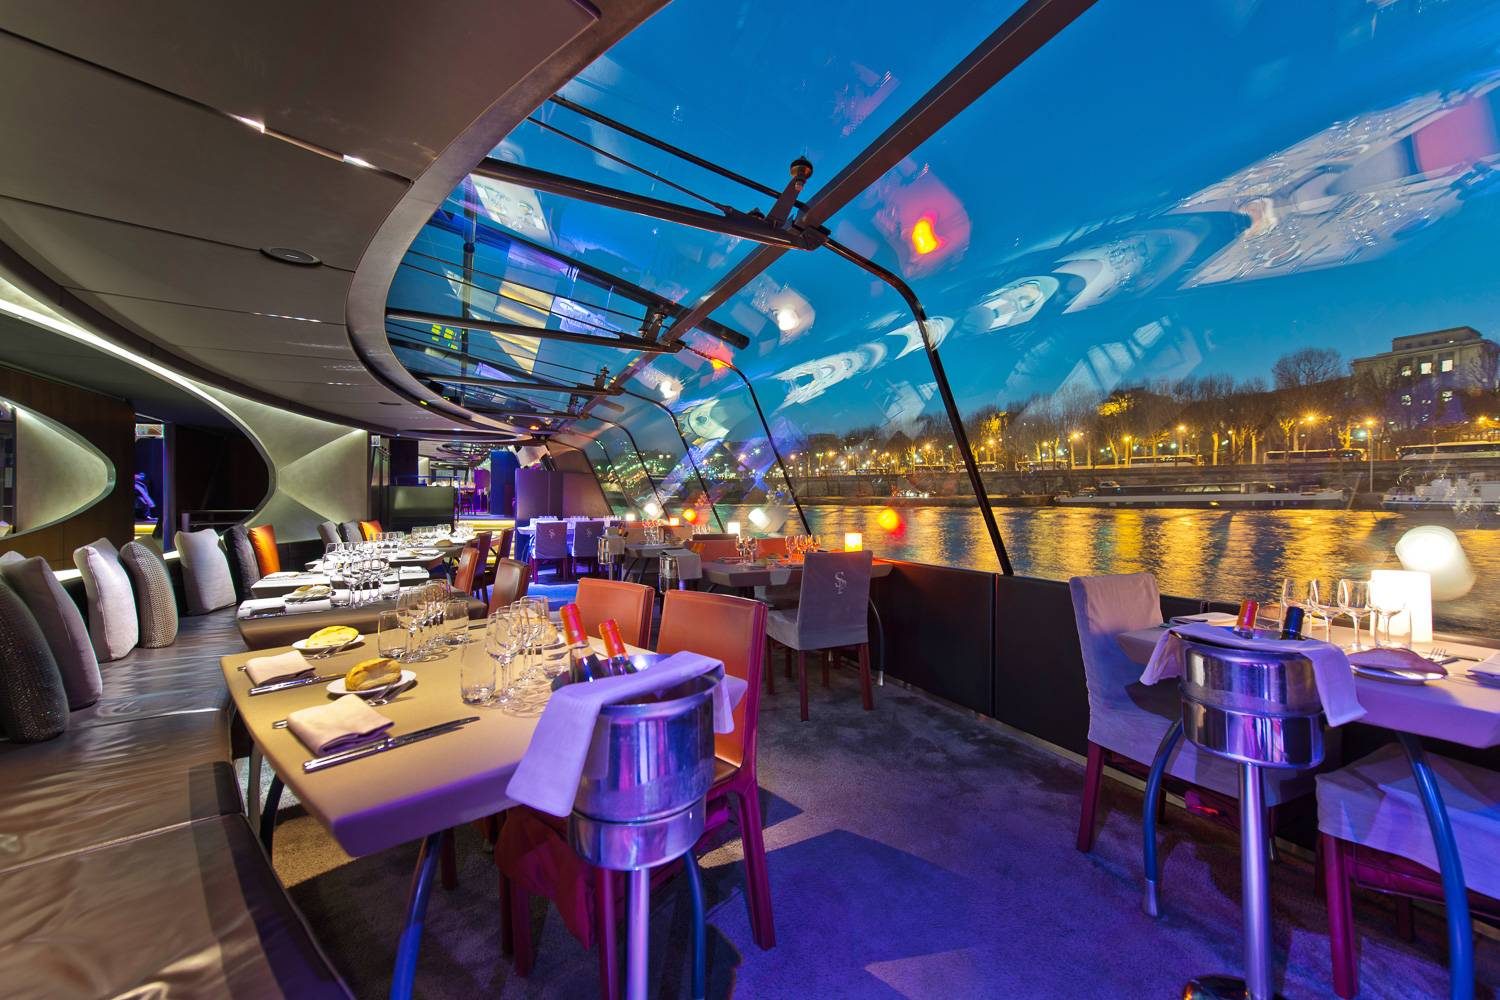 Image of the inside a of dinner cruise on the Seine River in Paris.